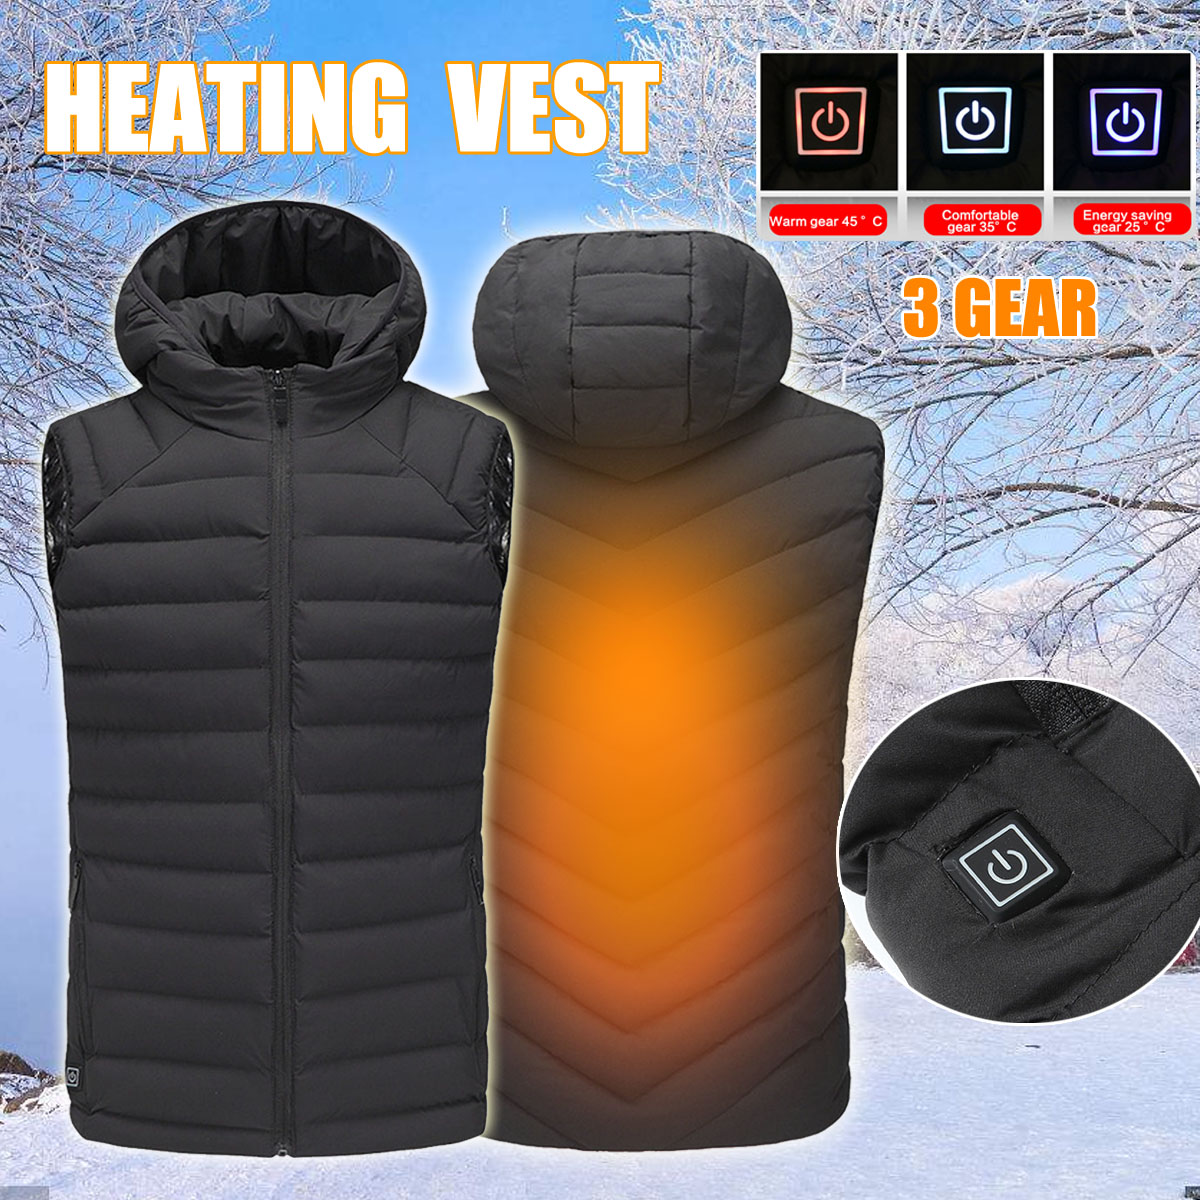 Electric USB Heated Heating Heat Hoodie Jacket Winter Warm Coat Temperature